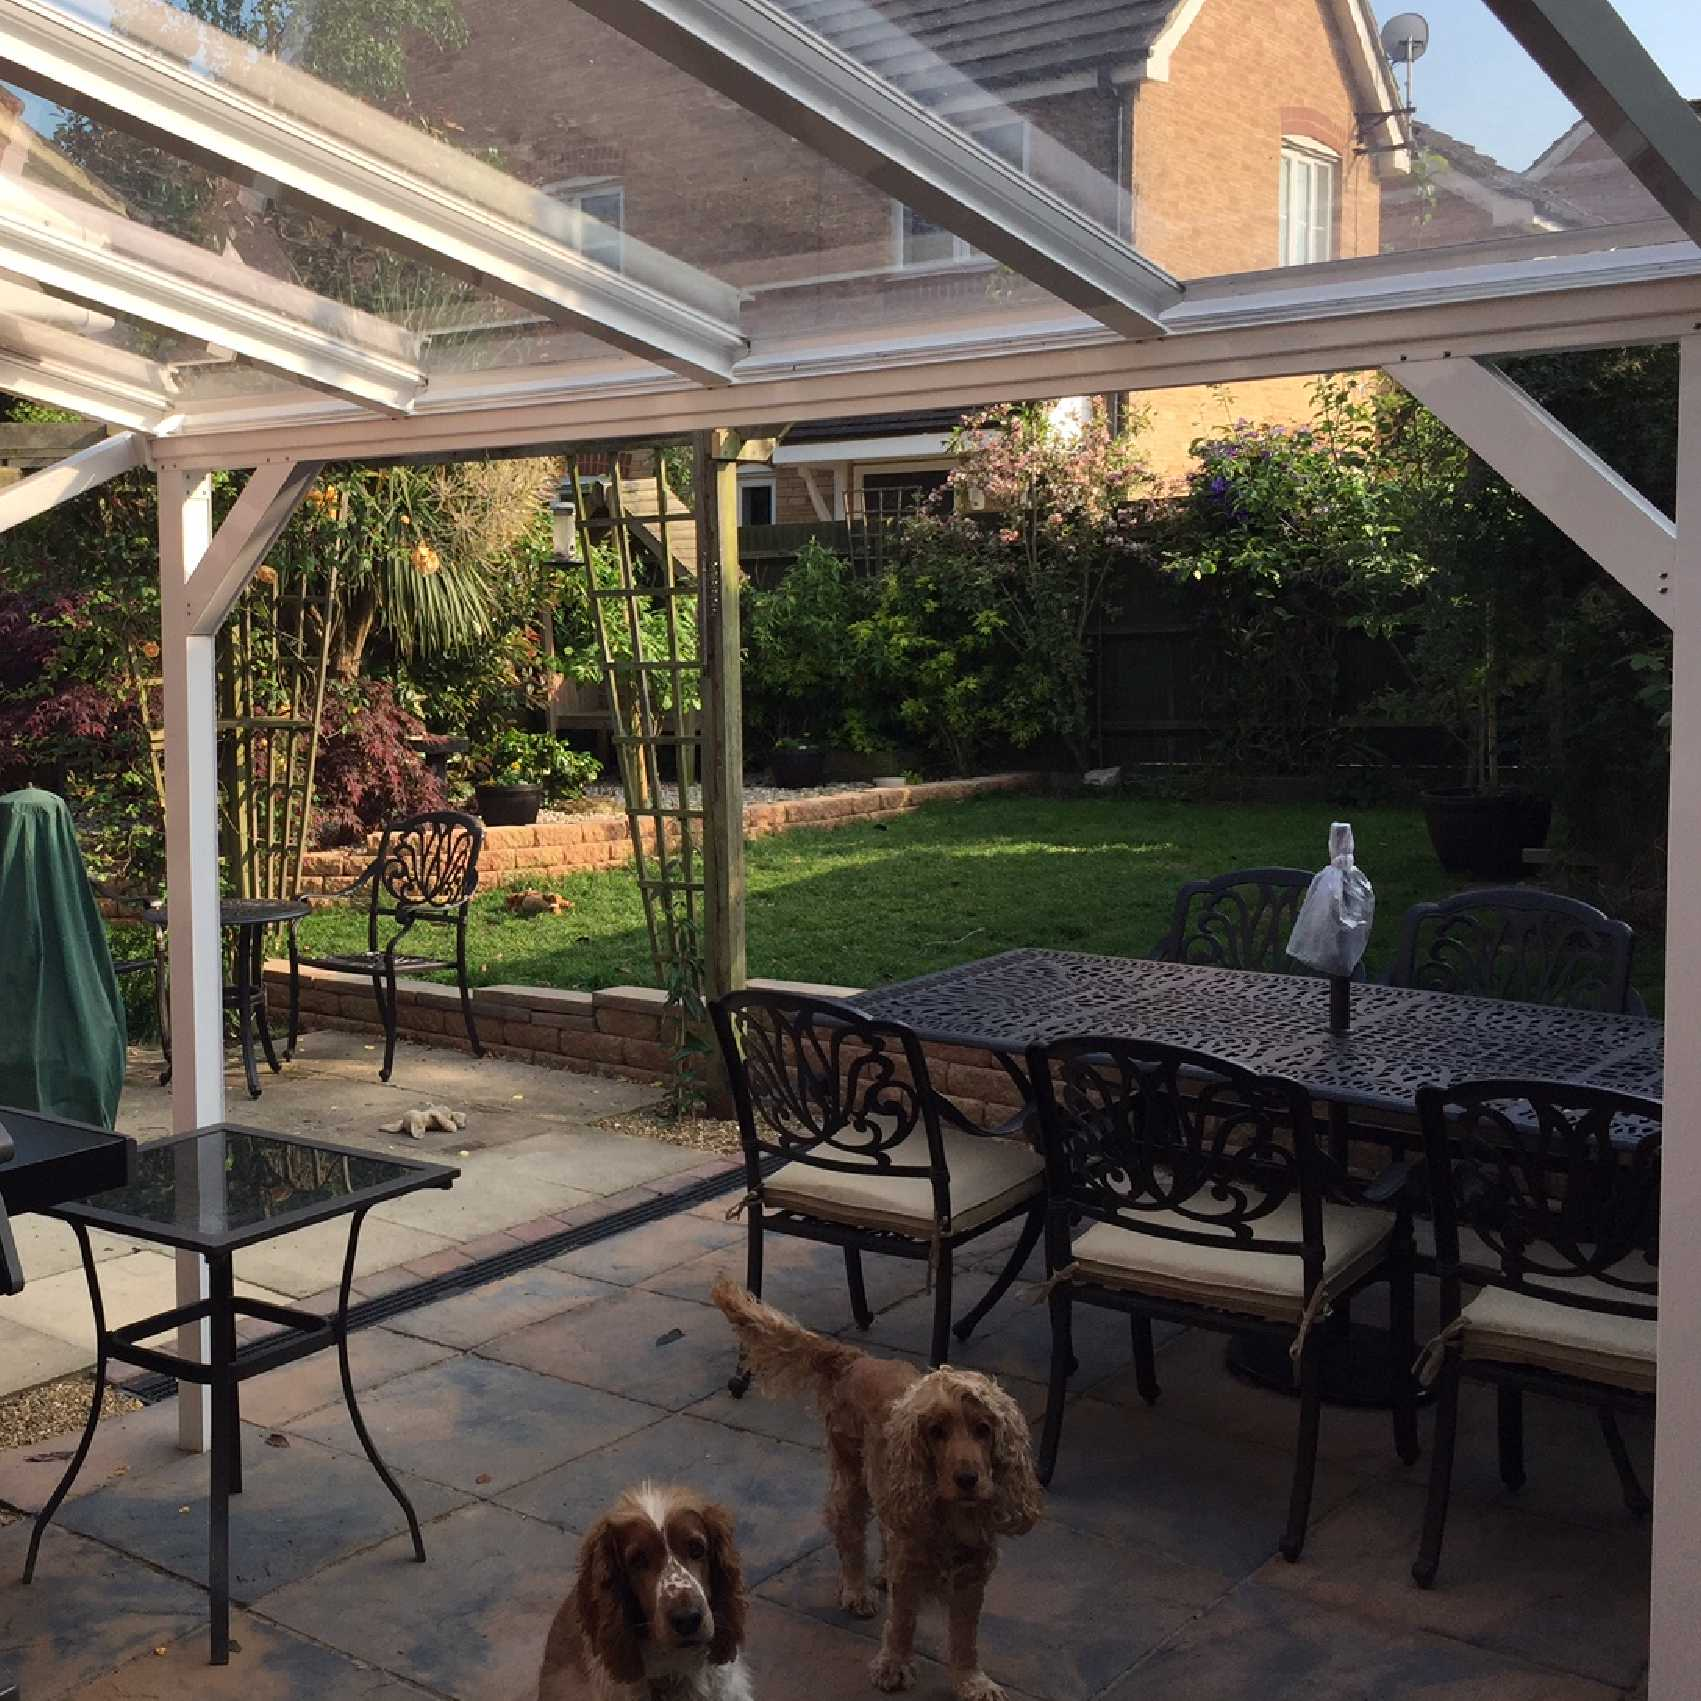 Affordable Omega Smart Lean-To Canopy with 6mm Glass Clear Plate Polycarbonate Glazing - 3.5m (W) x 2.0m (P), (3) Supporting Posts